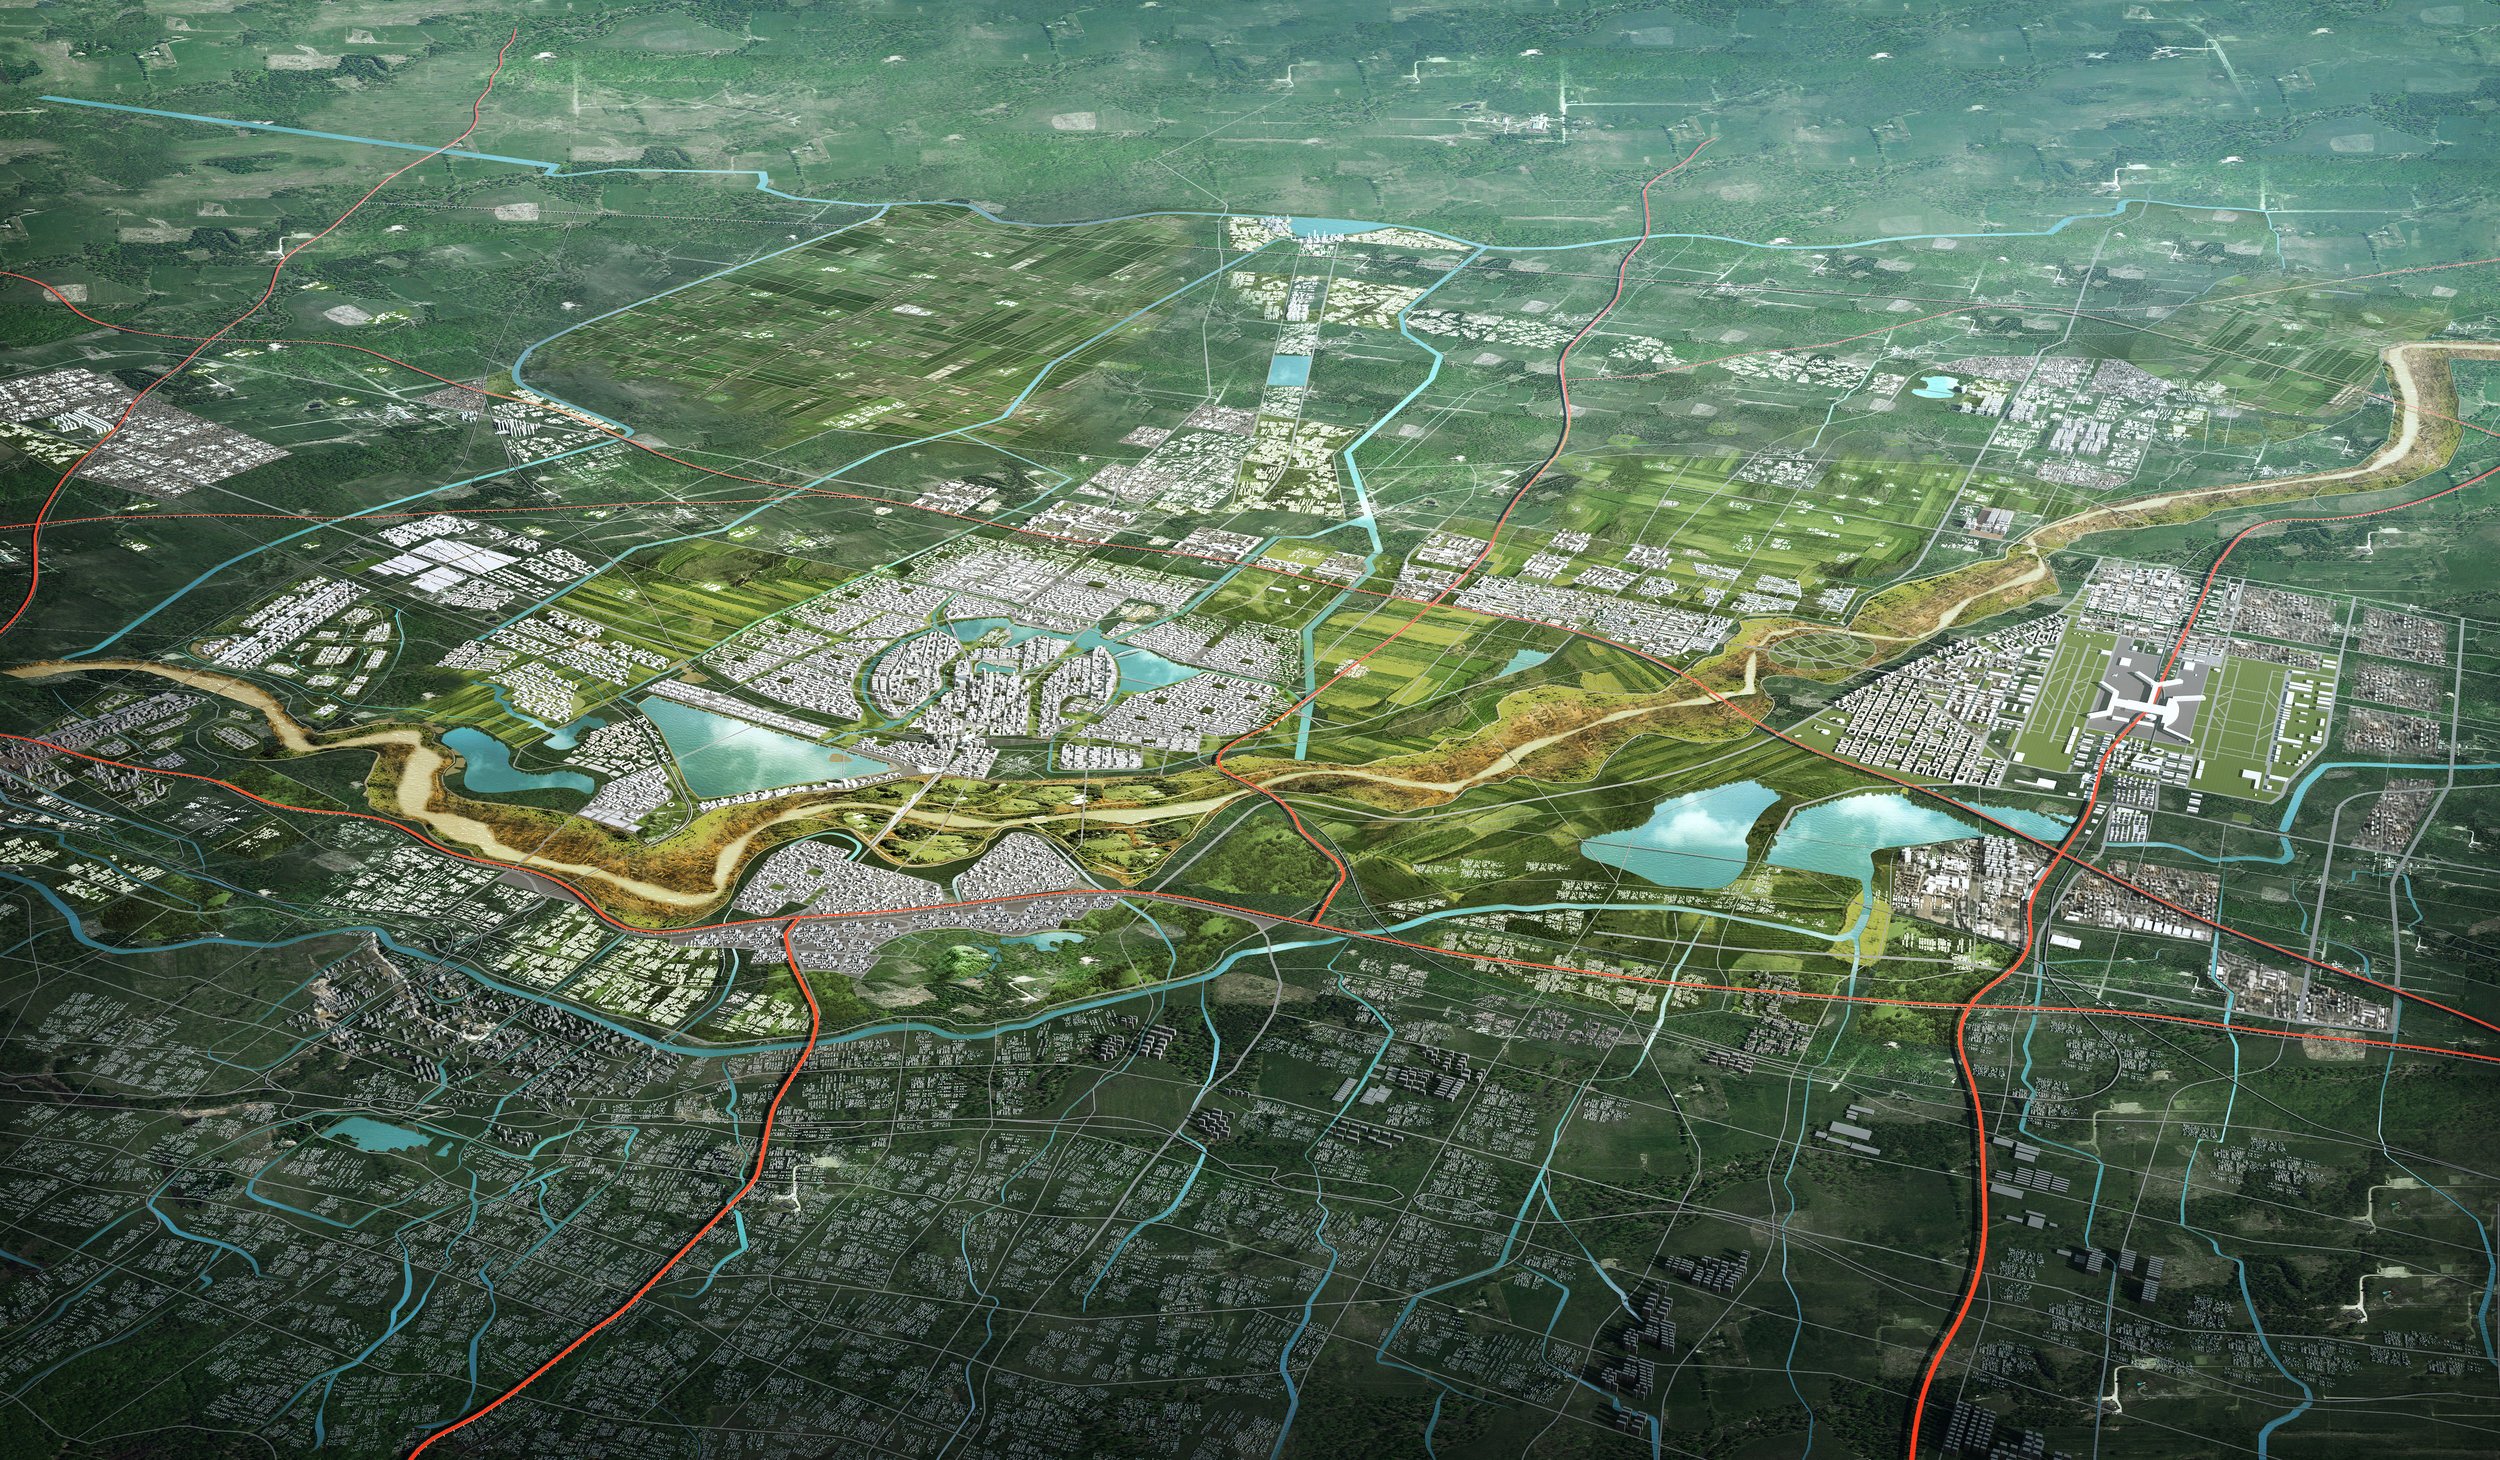 DF_Jinan River North Development_MainAerial.jpg